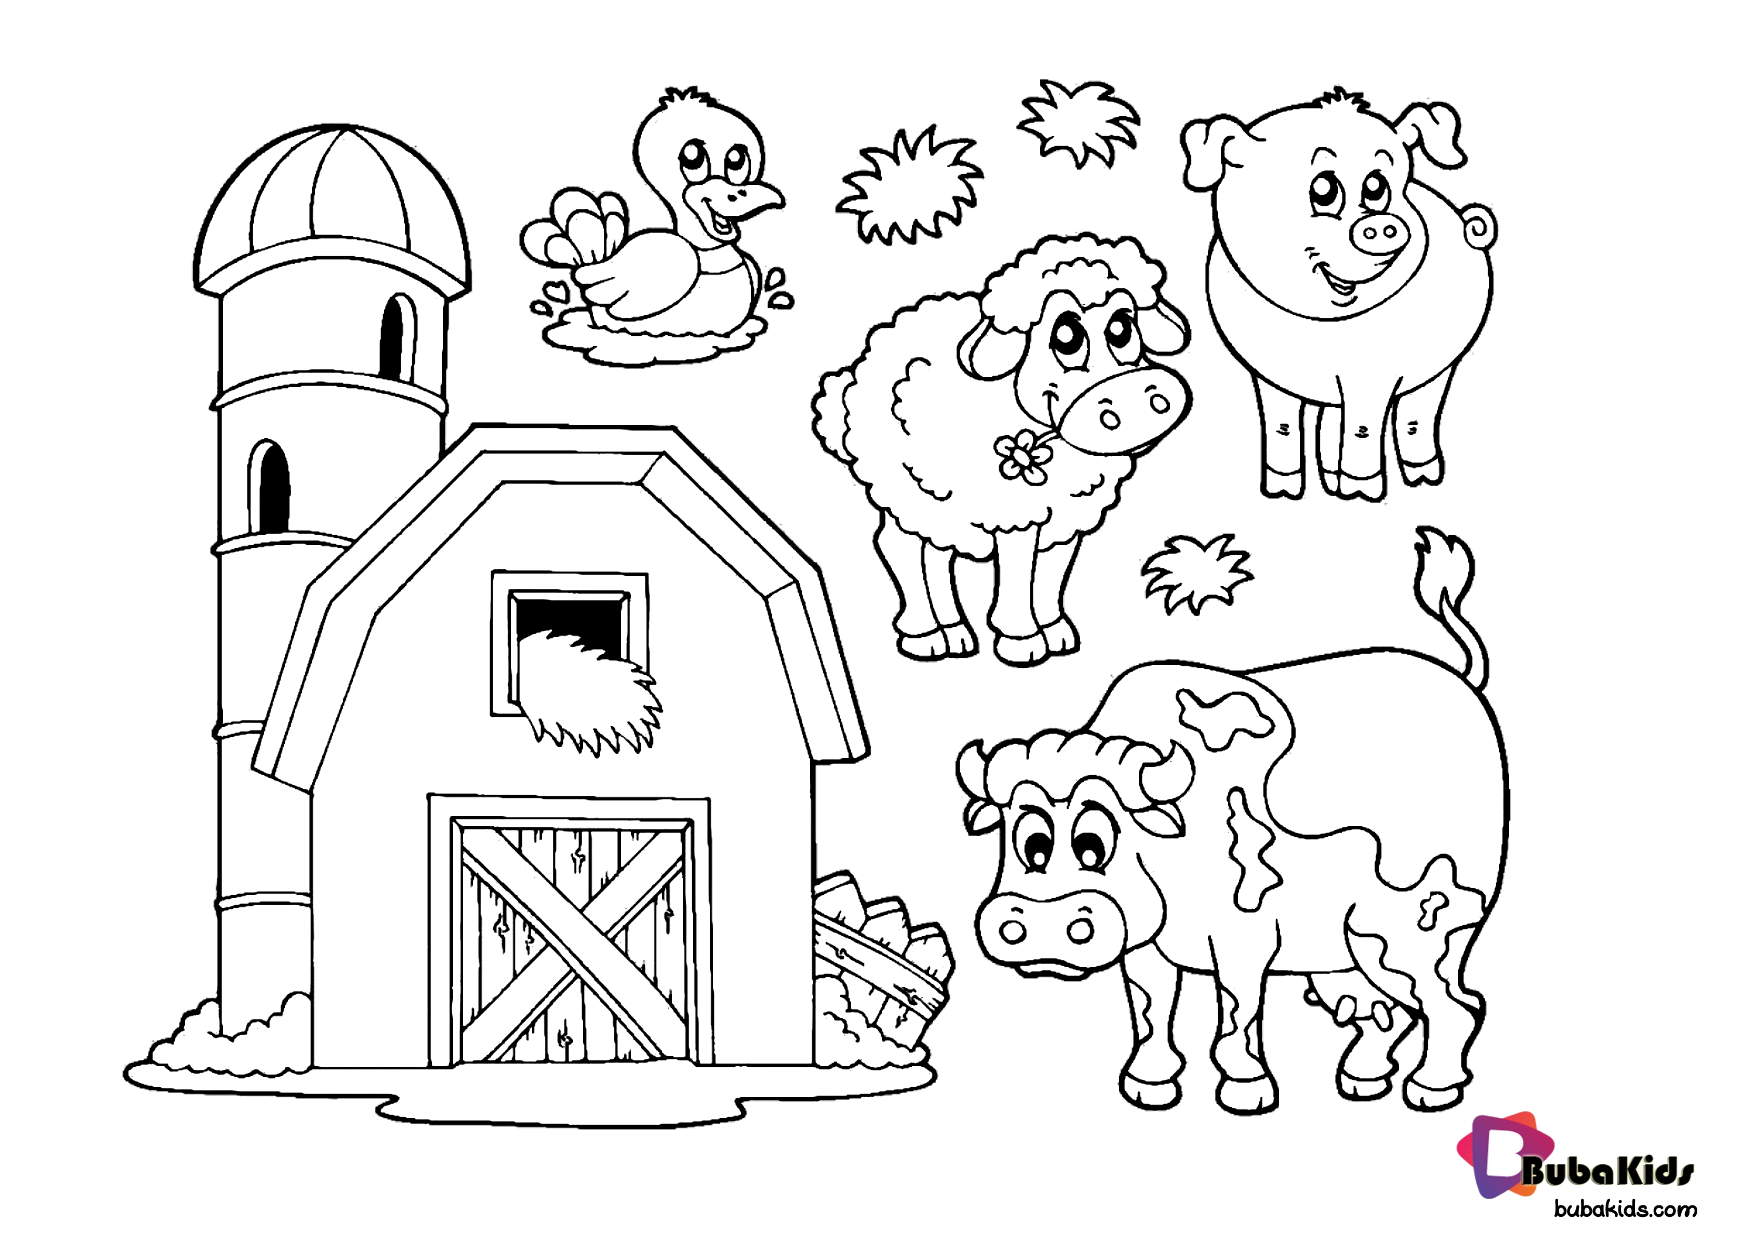 Farm Animal Coloring Page For Children To Print And Color Collection Of Animal Coloring Pages Farm Animal Coloring Pages Animal Coloring Pages Coloring Pages [ 1237 x 1759 Pixel ]